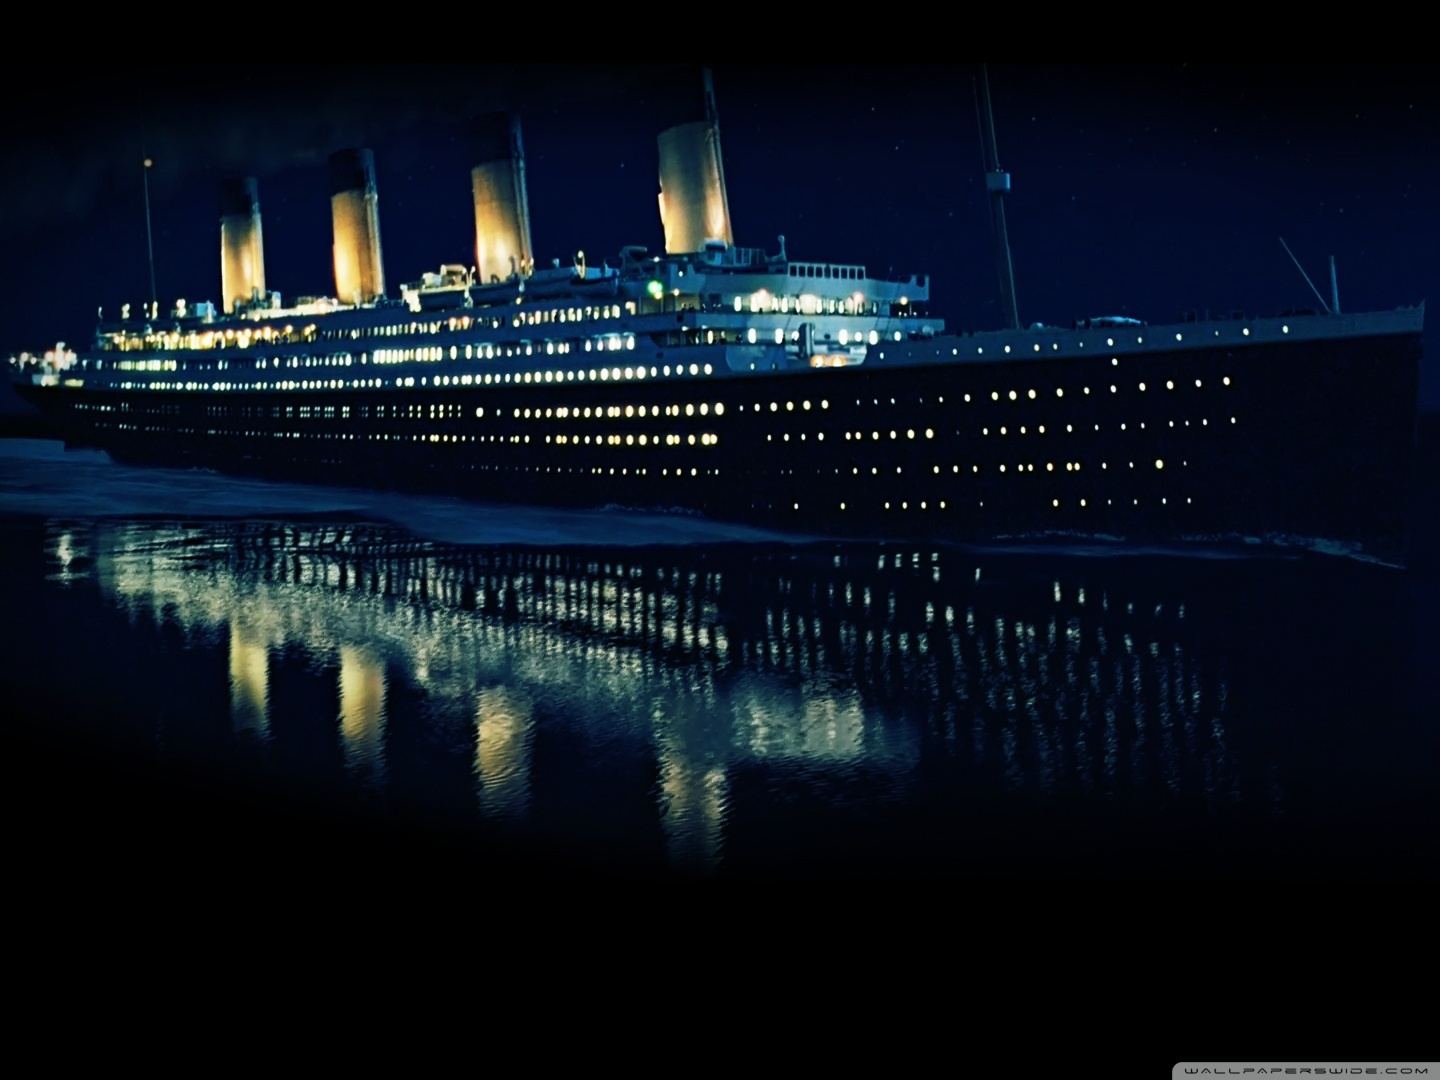 titanic_3d-wallpaper-1440x1080.jpg